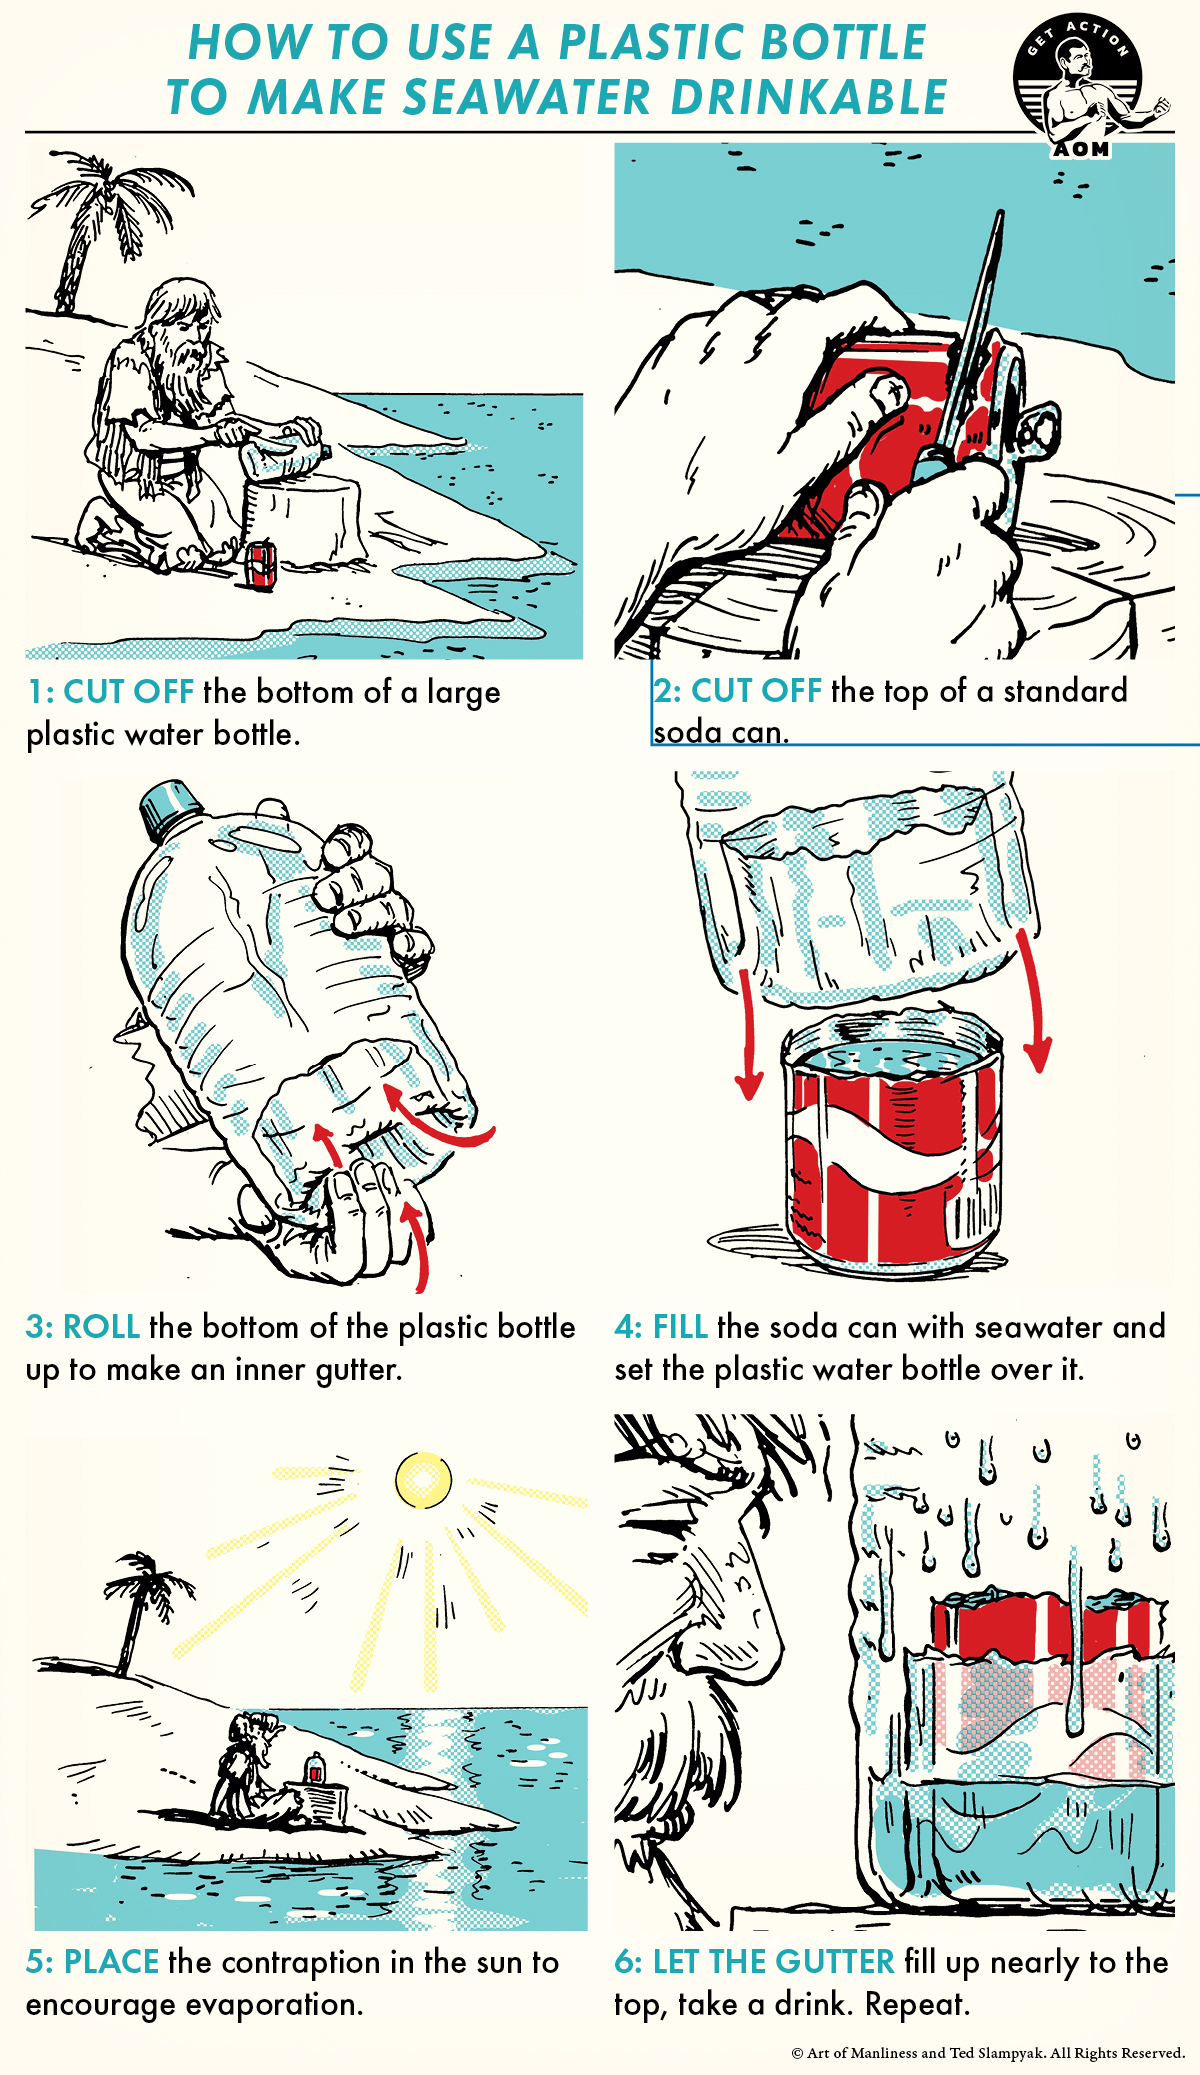 How to turn ocean water into drinkable water using a can and plastic bottle. Not recommended unless you've found your self at a real pinch